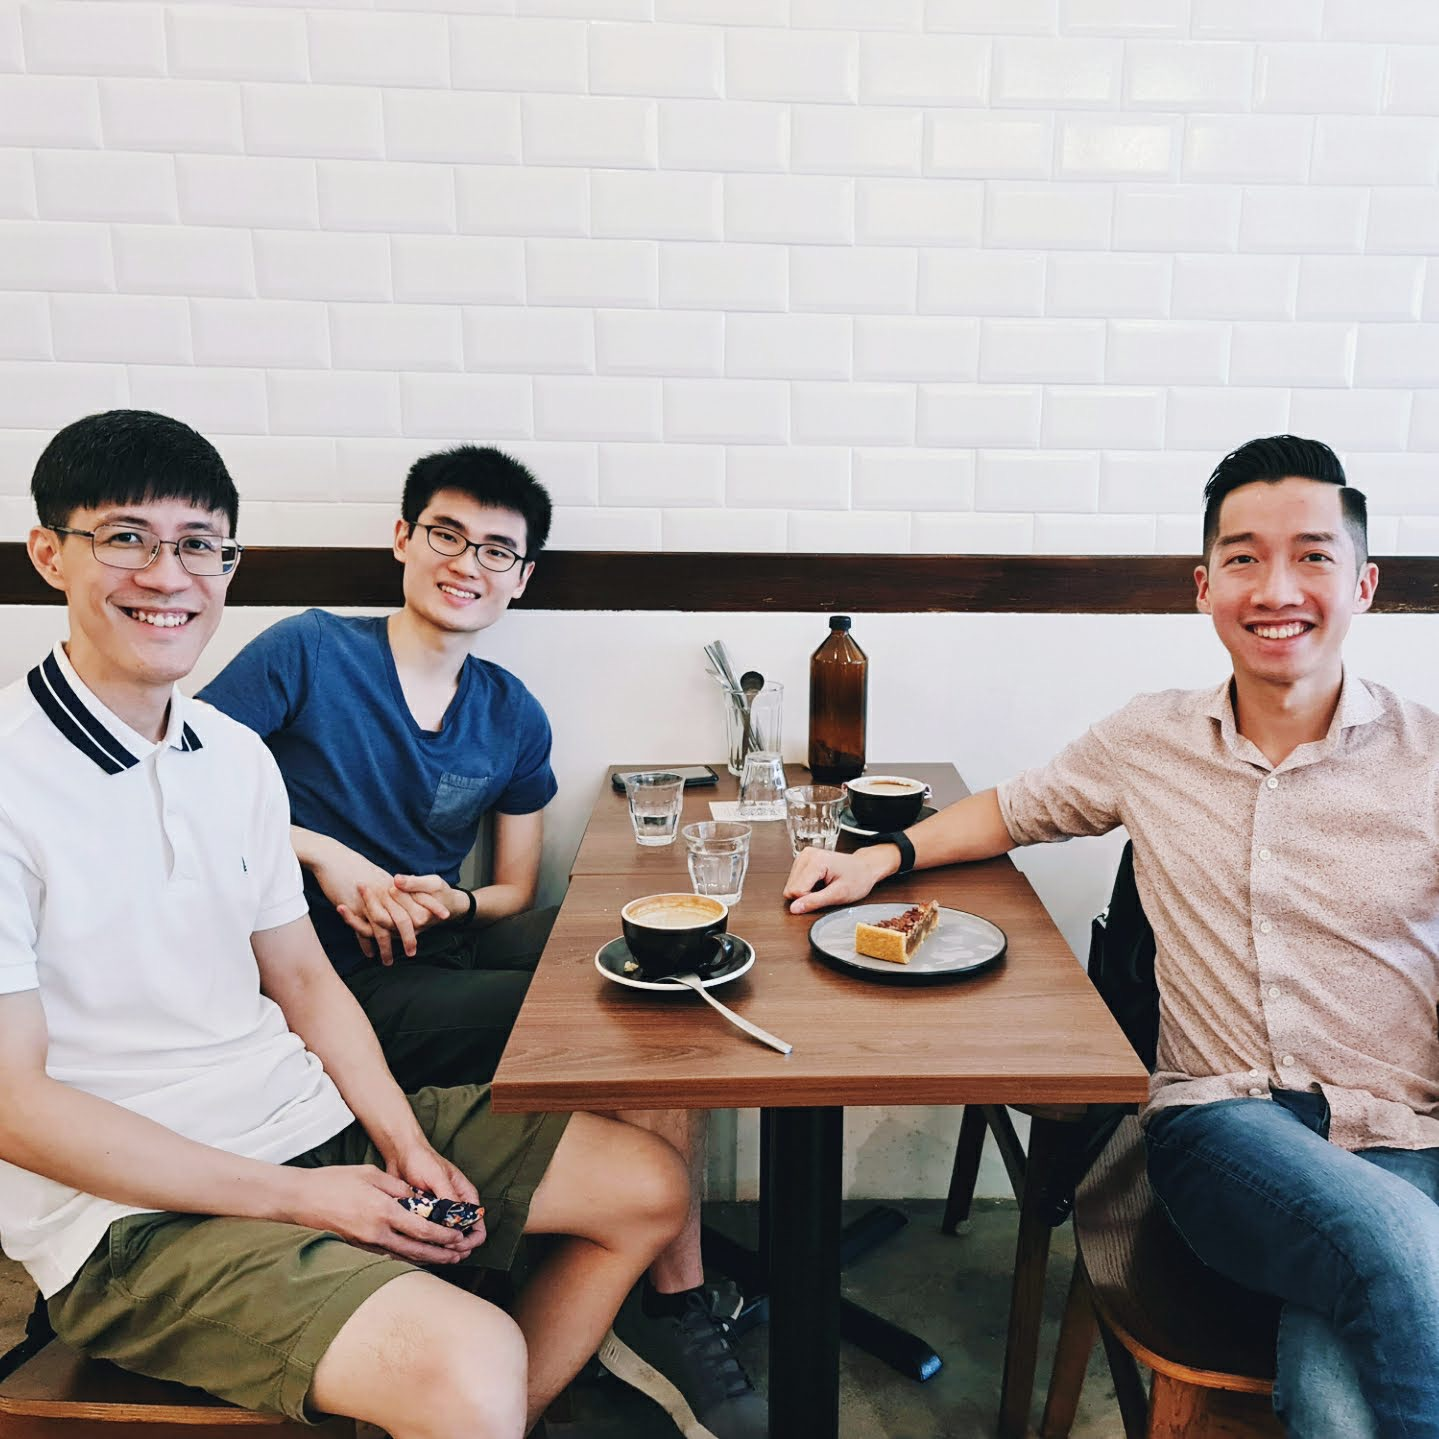 Makoto C. Hong, right, an LL.M. student from Singapore, said regular meetings with two other Harvard Law LL.M. students from Singapore have helped him stay connected throughout the year.